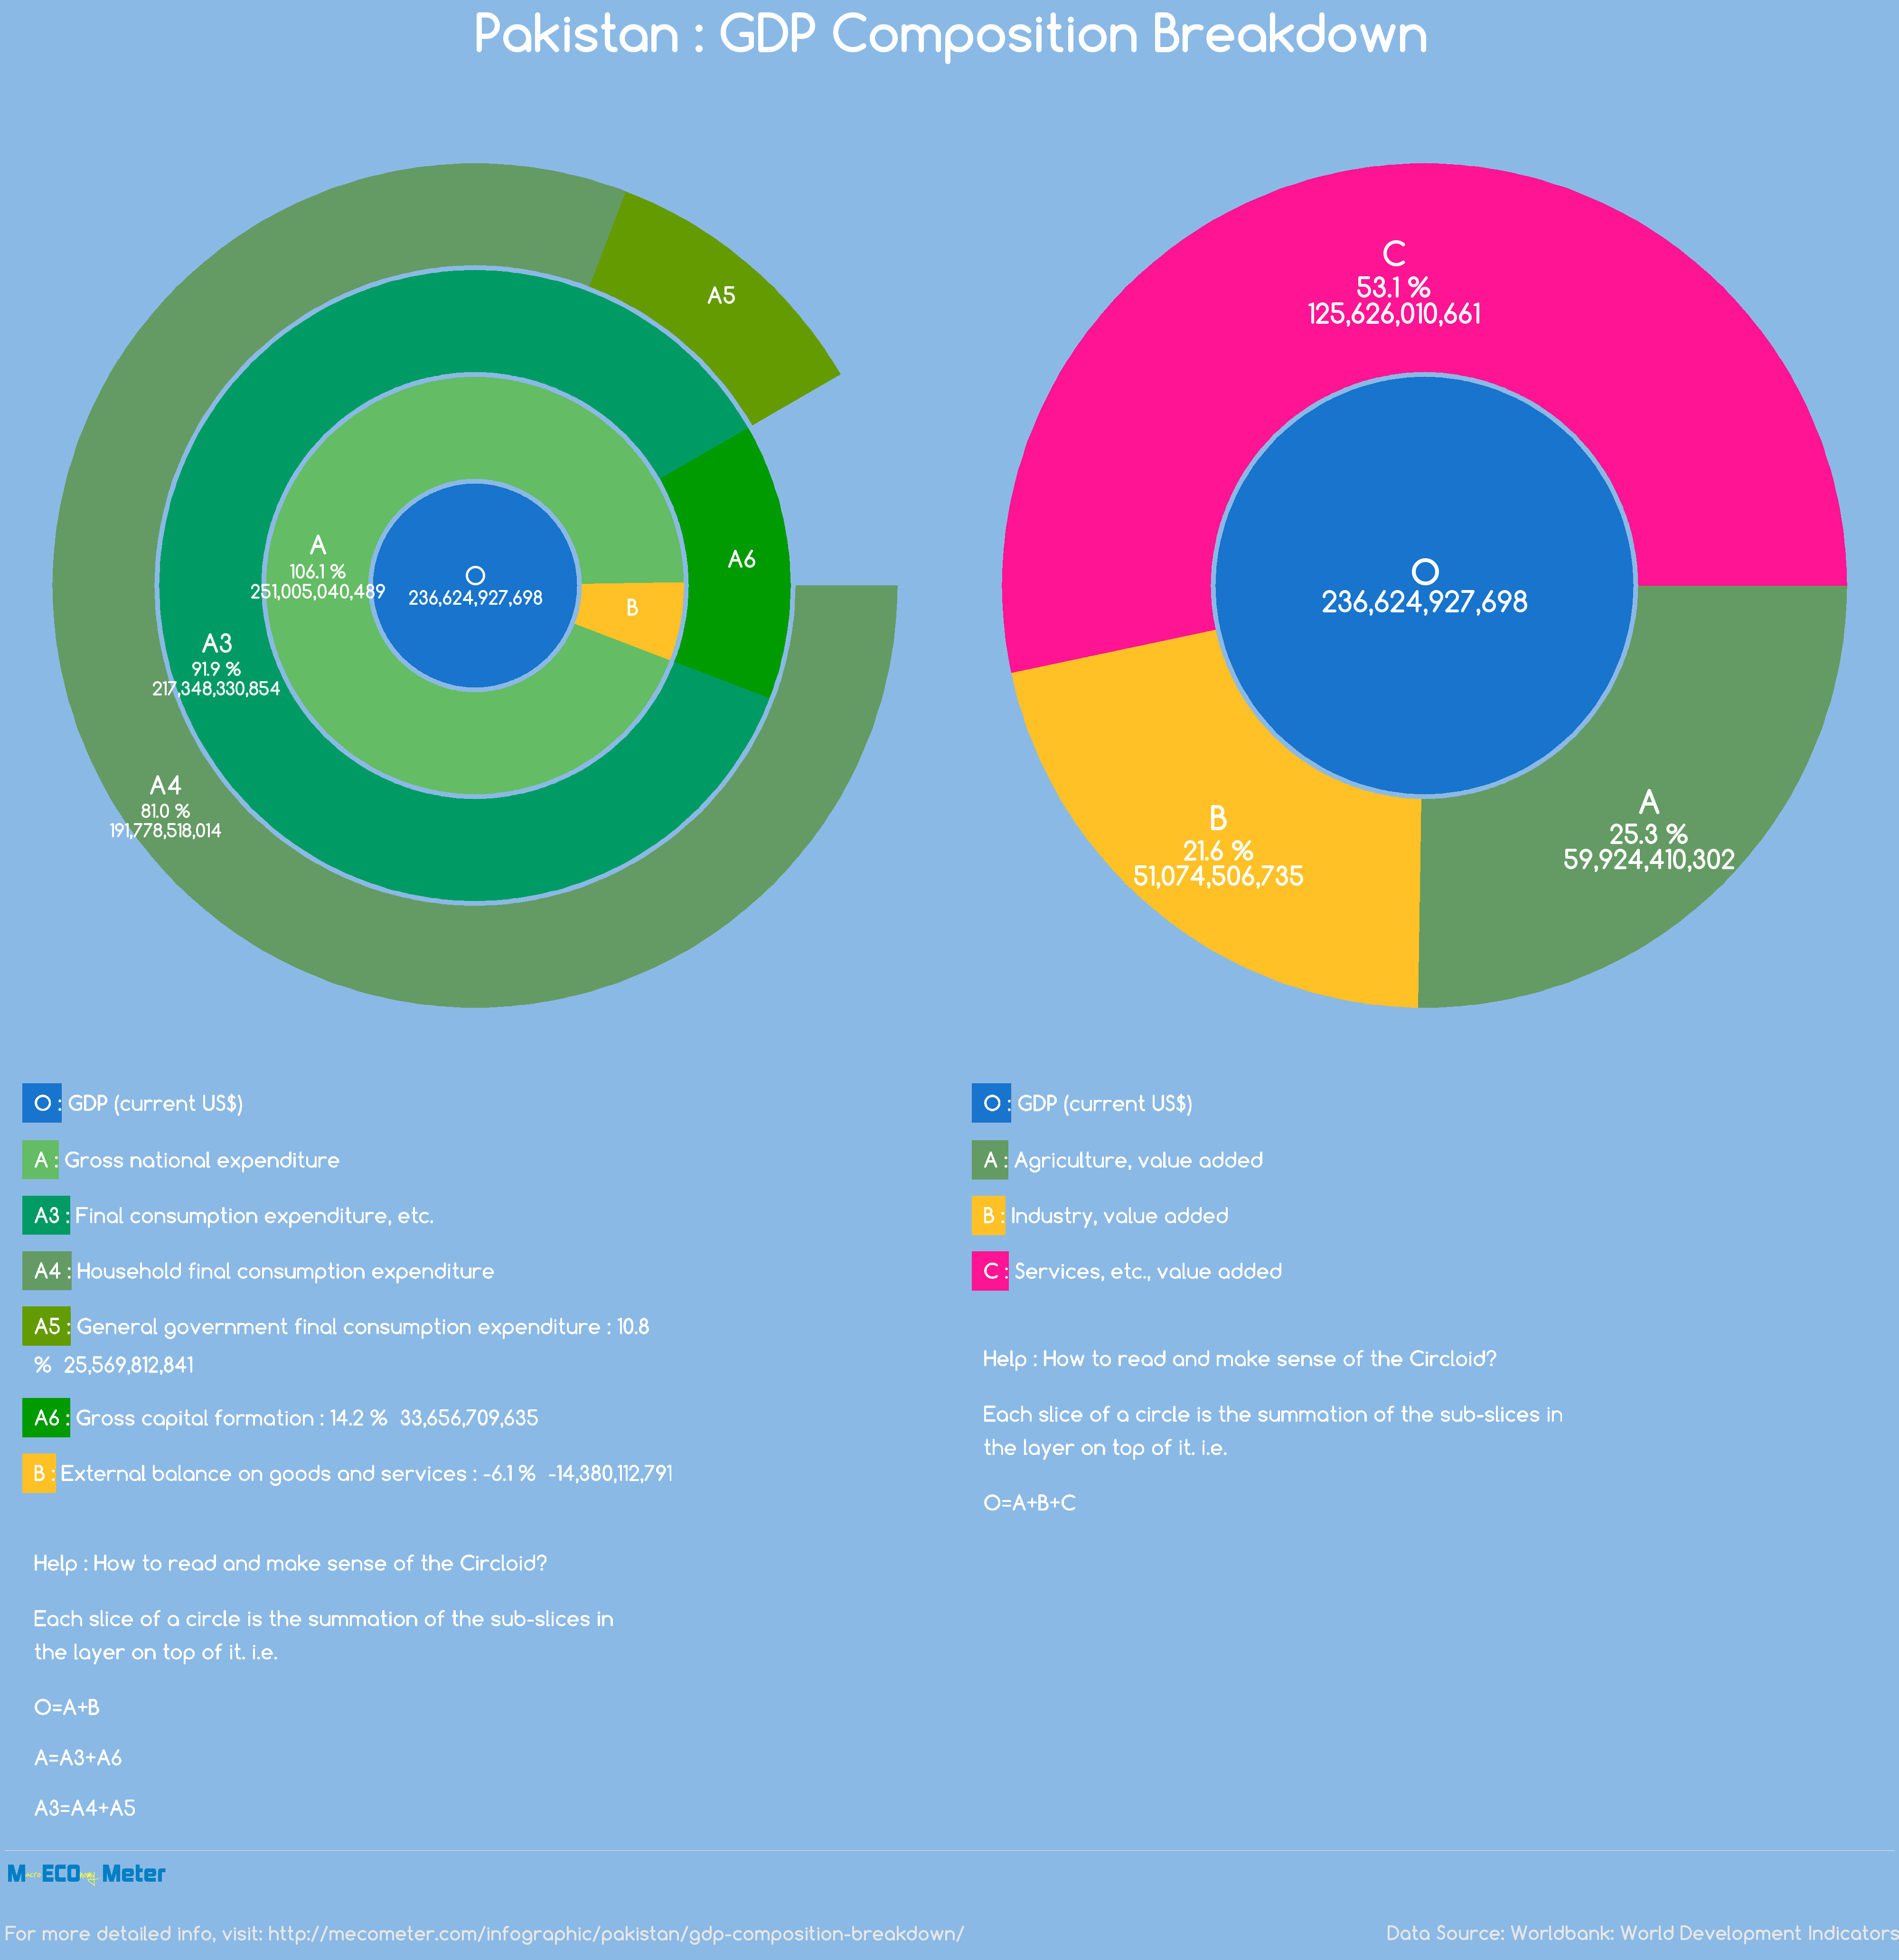 Pakistan : GDP Composition Breakdown